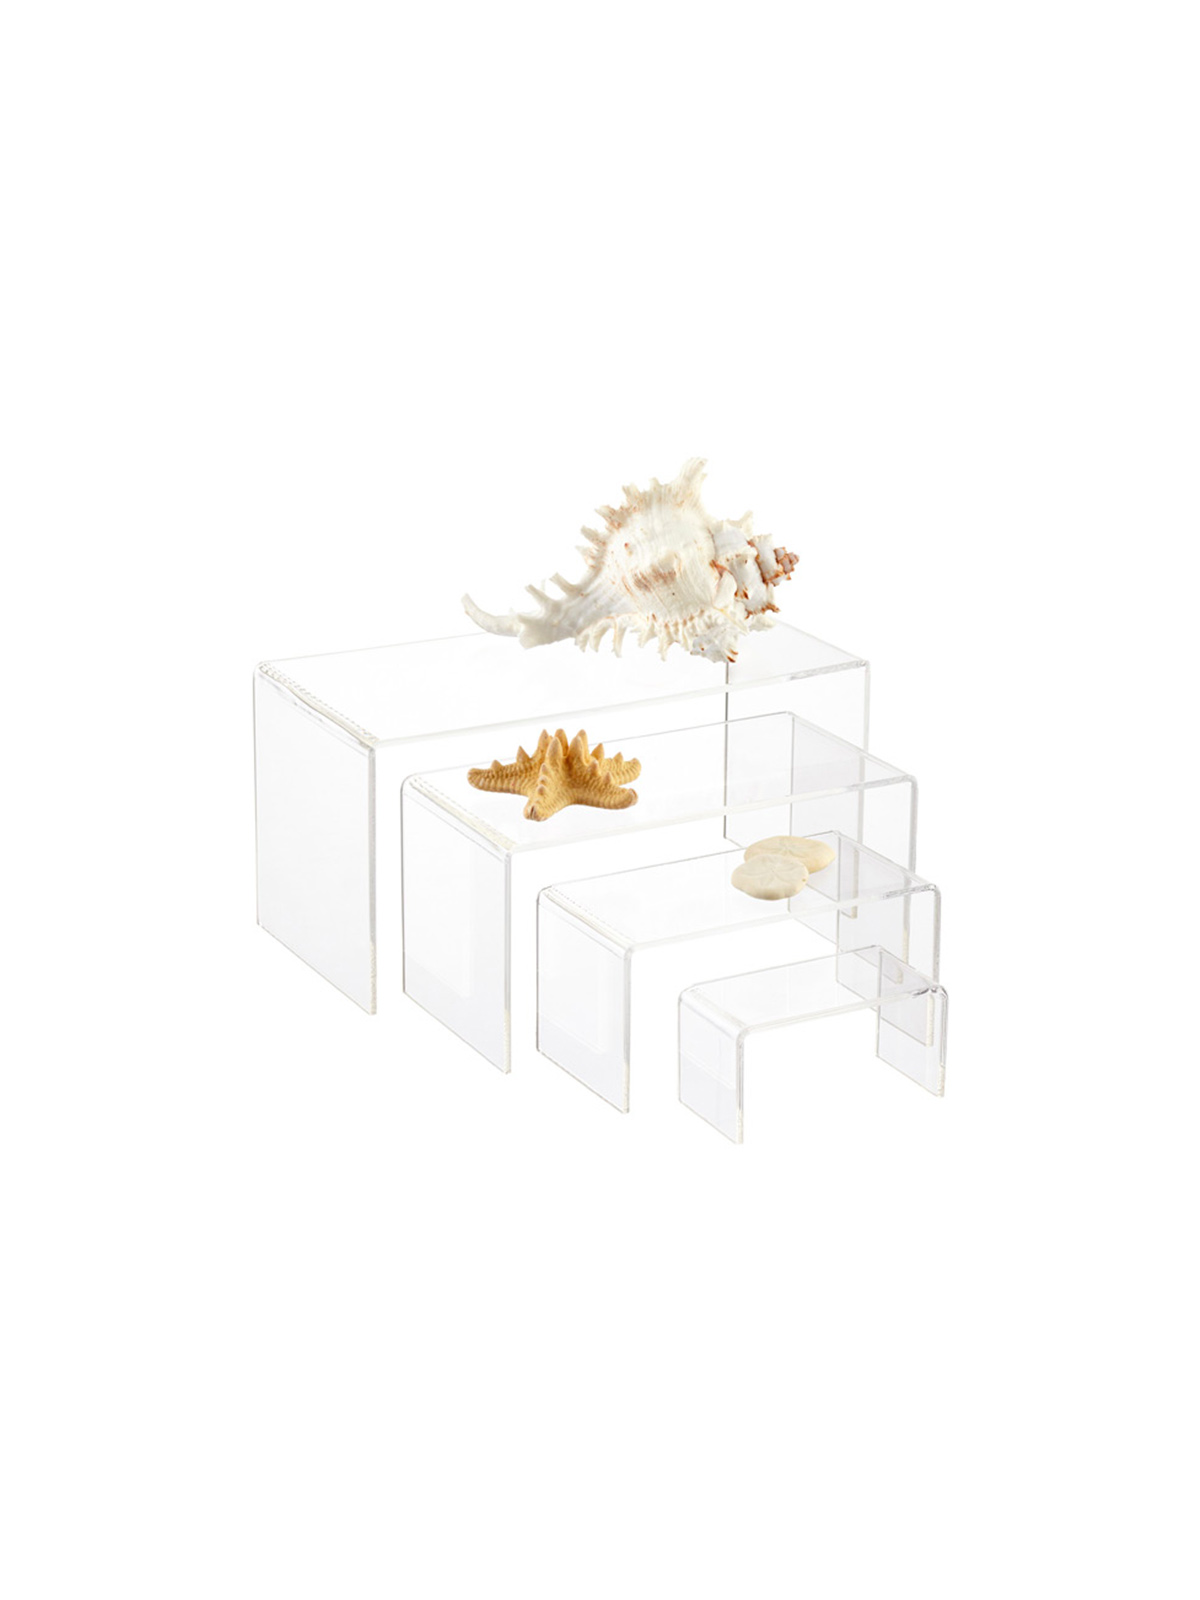 Best Container Store Organizers, Risers